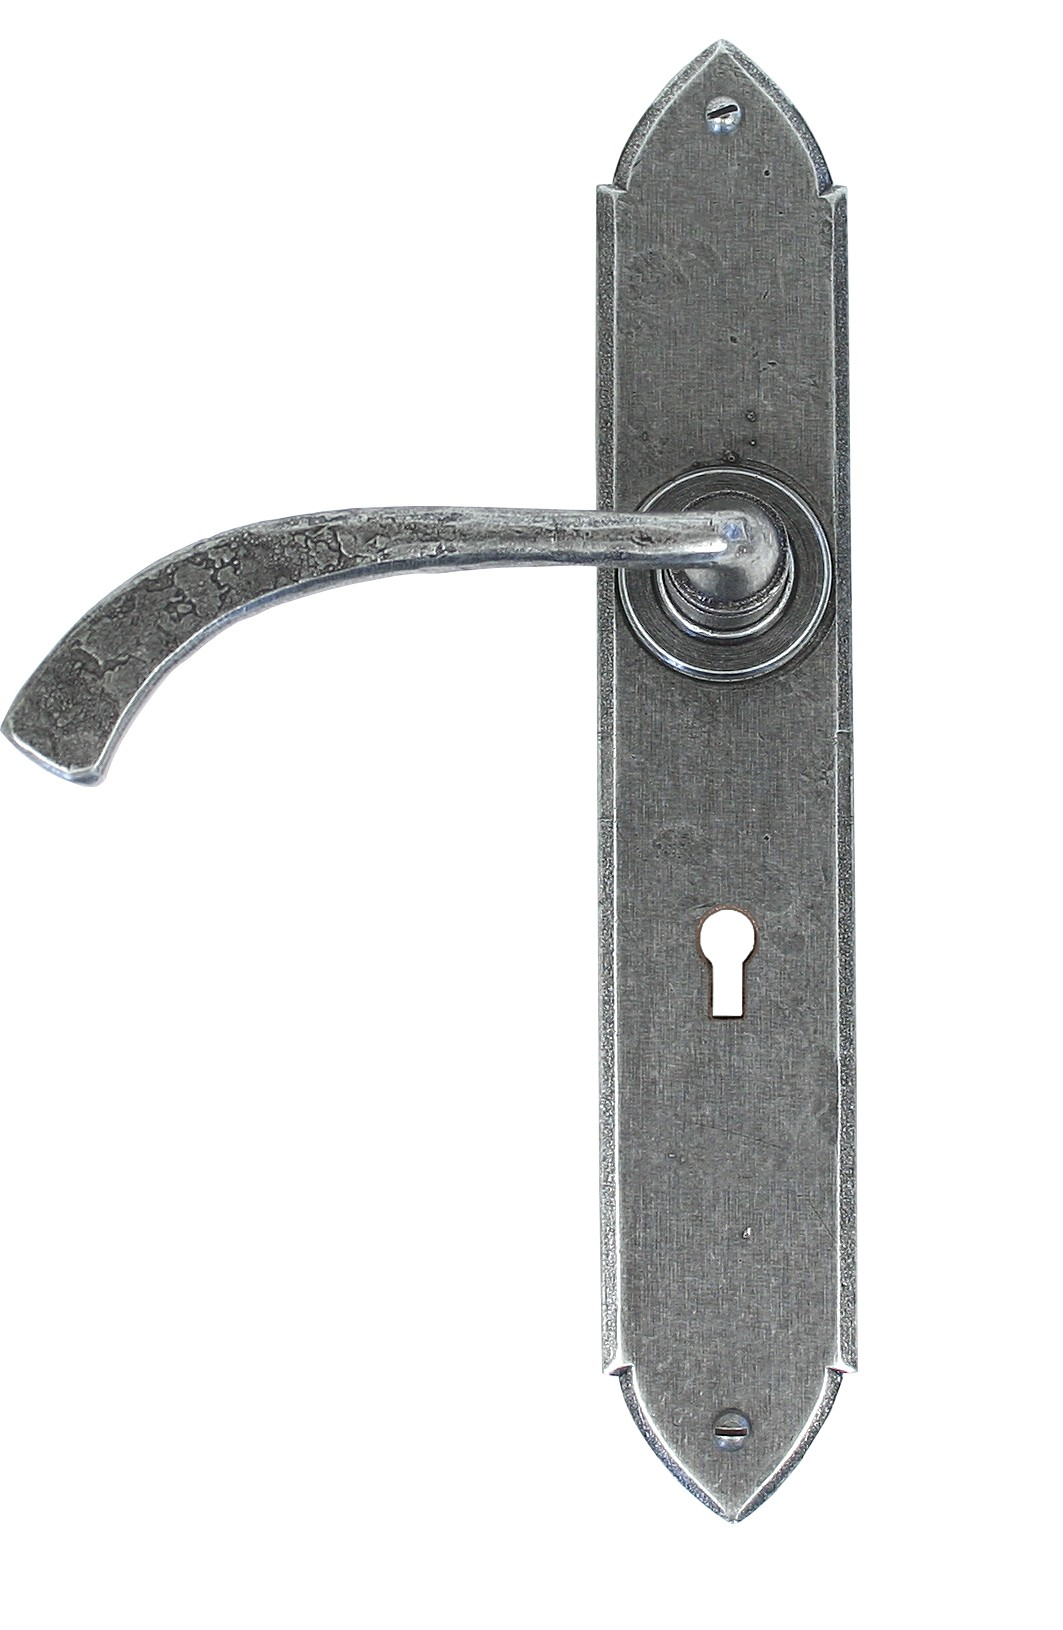 ANVIL - Pewter Gothic Curved Sprung Lever Lock Set